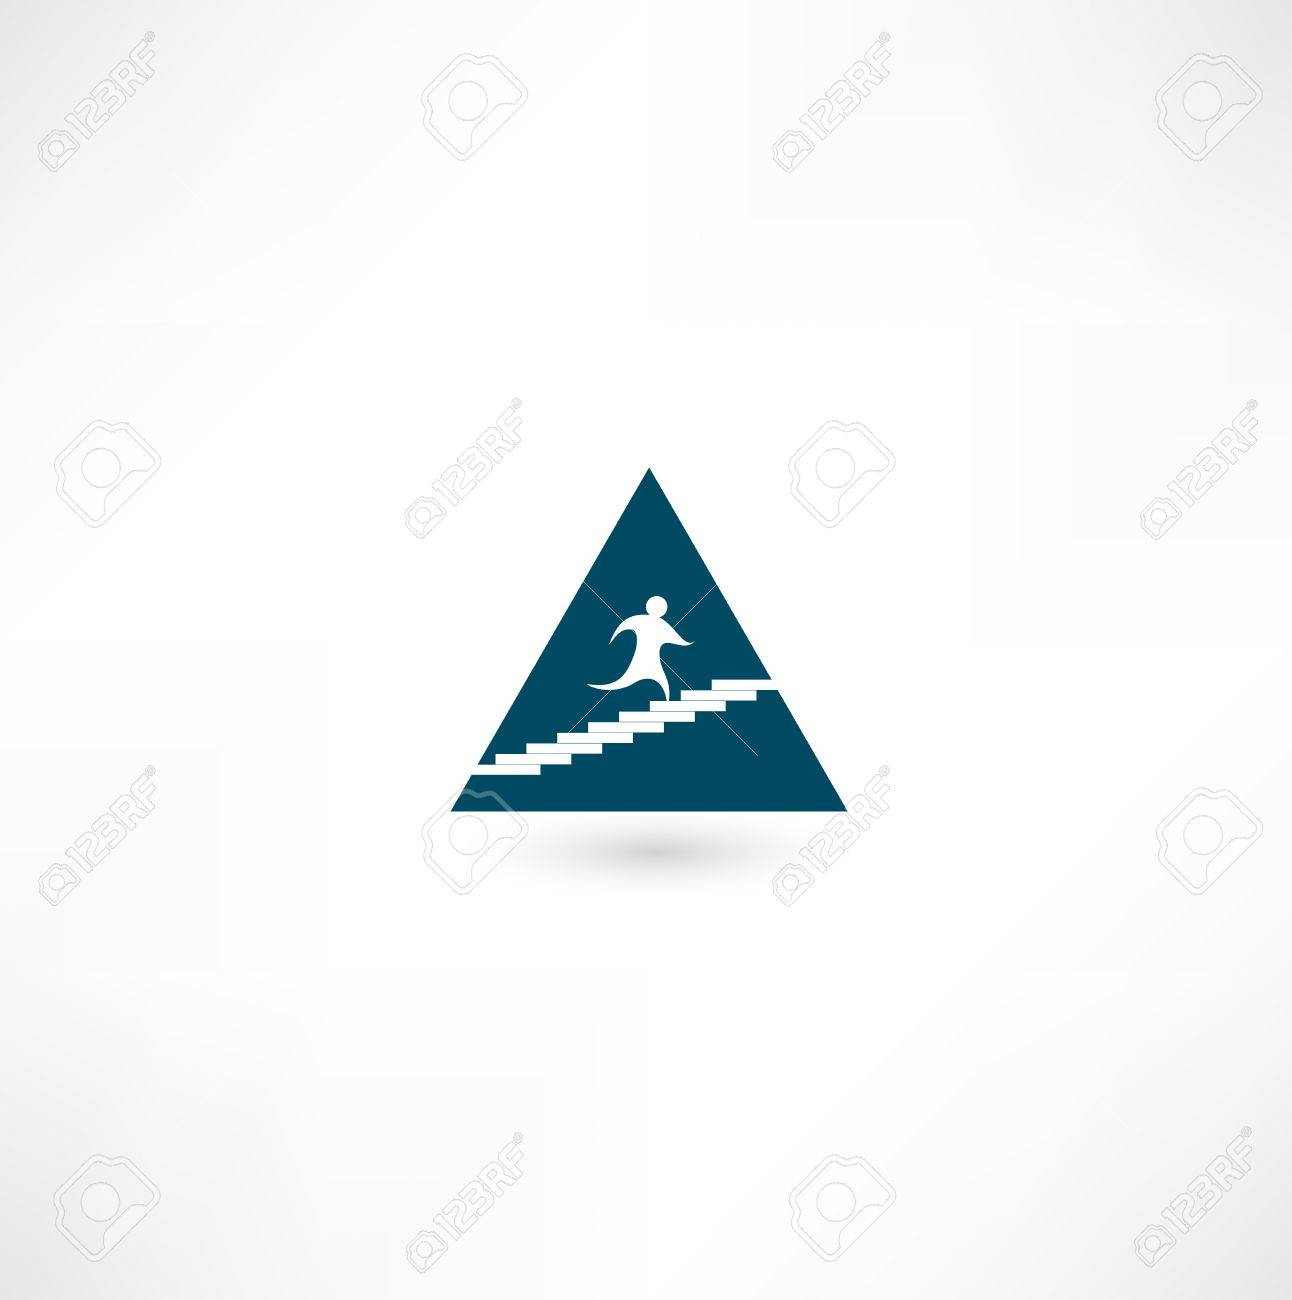 Up the pyramid icon Stock Vector - 16138438